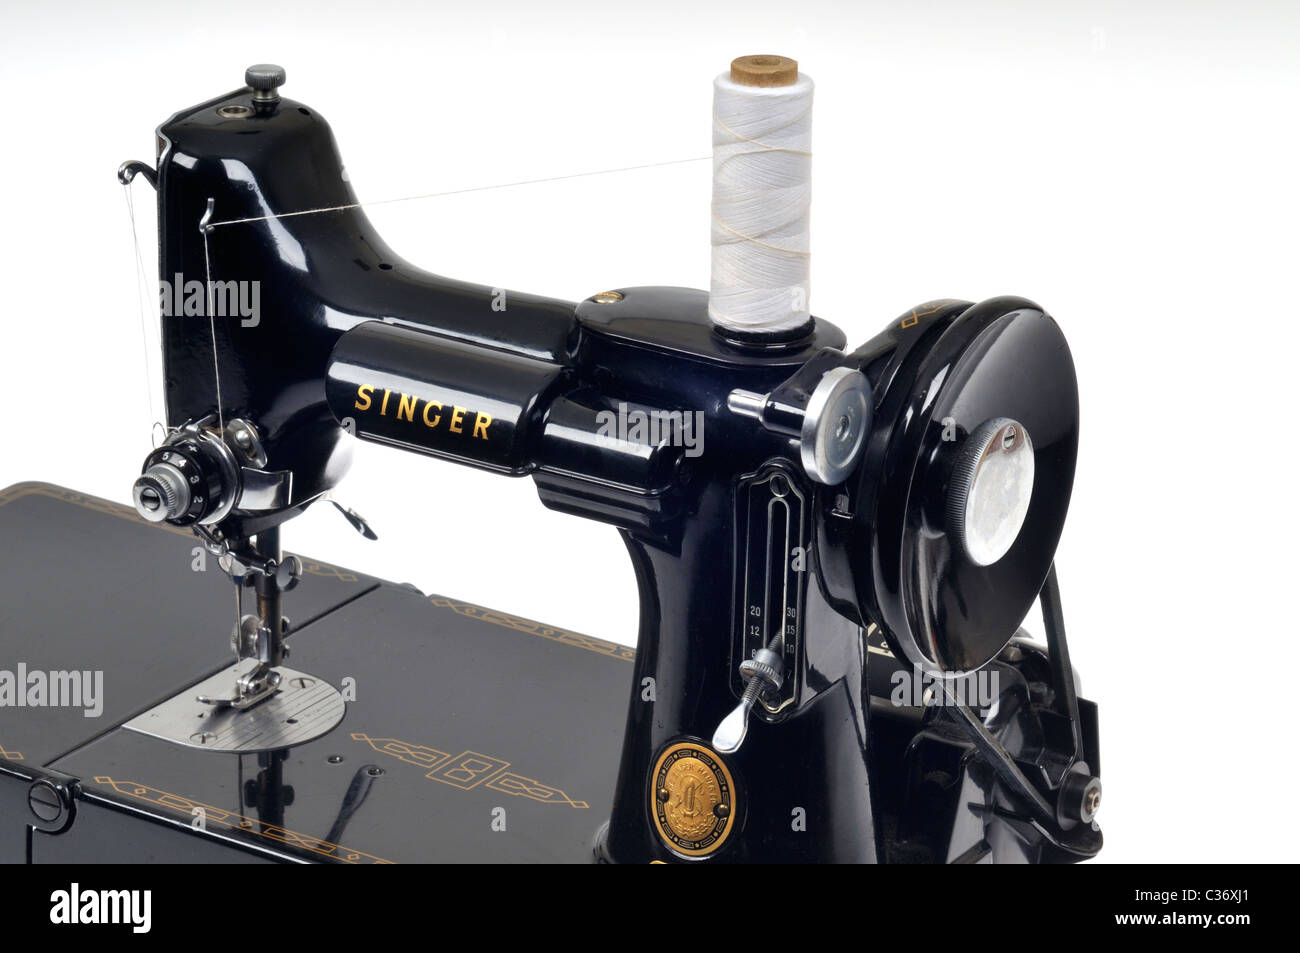 Old Singer Sewing Machine Stock Photos Parts Diagram Threading Vintage Threaded With Spool Of White Thread On Image